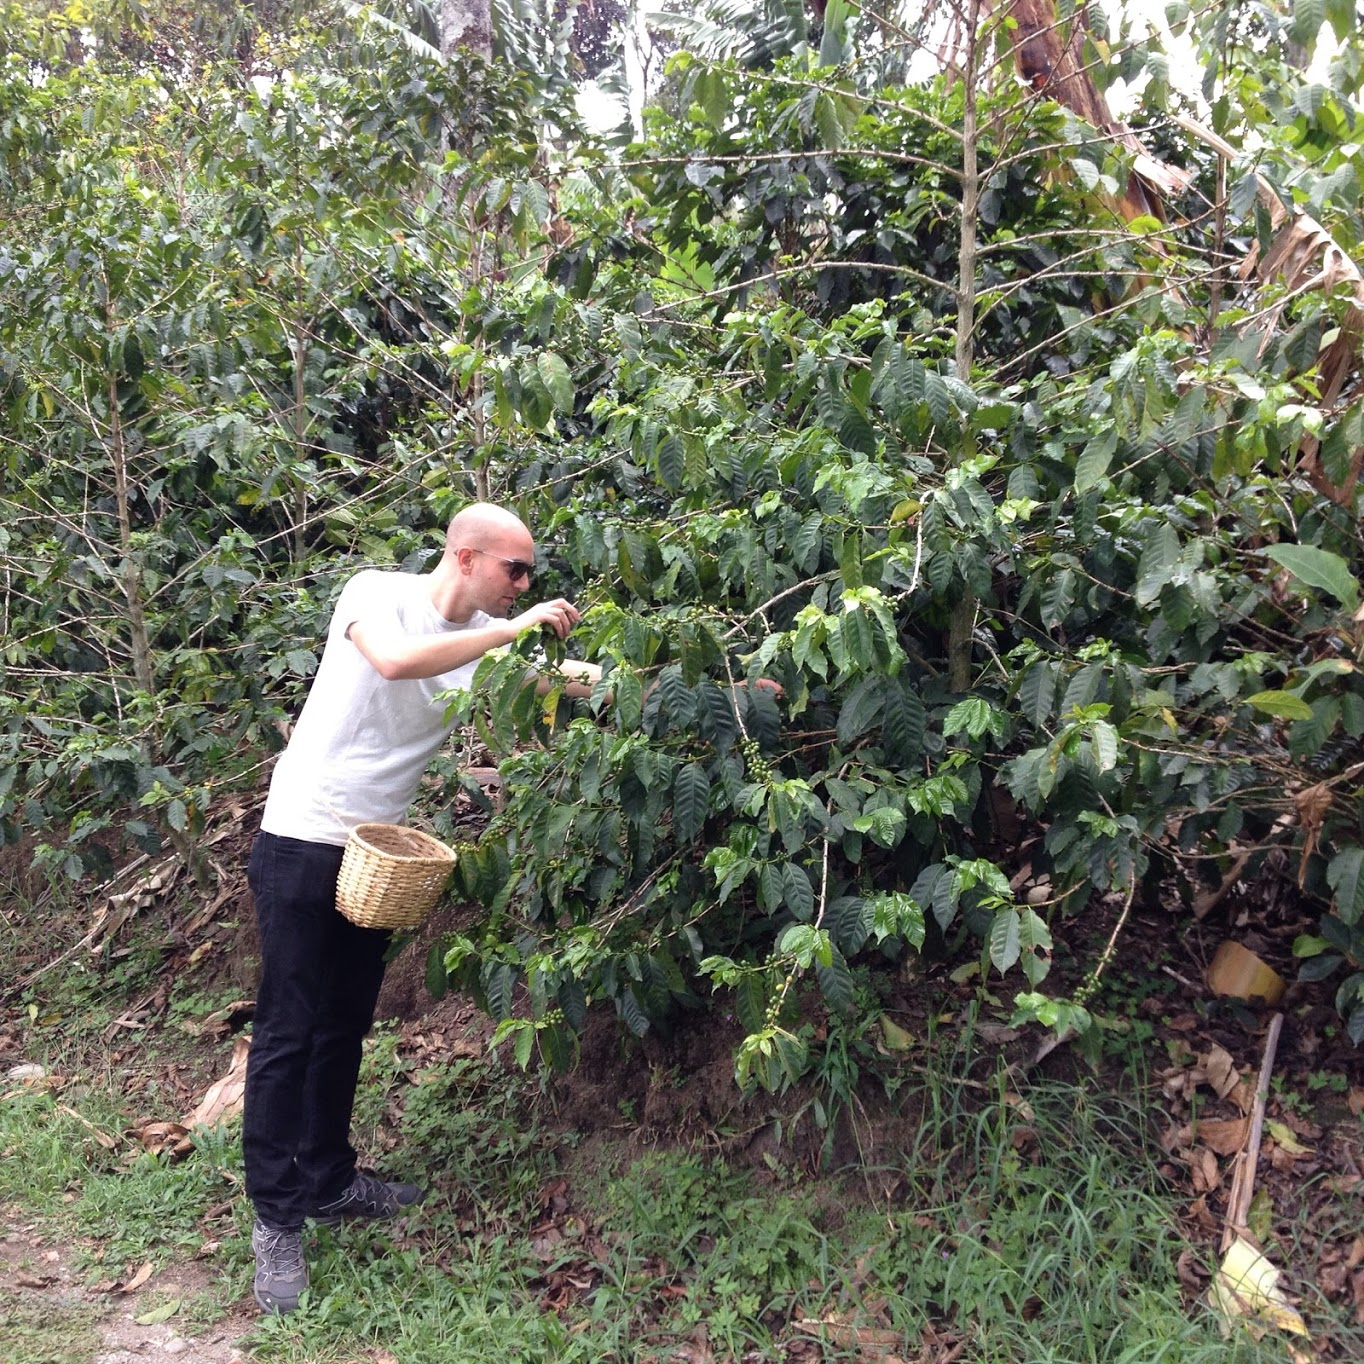 Picking coffee in Colombia